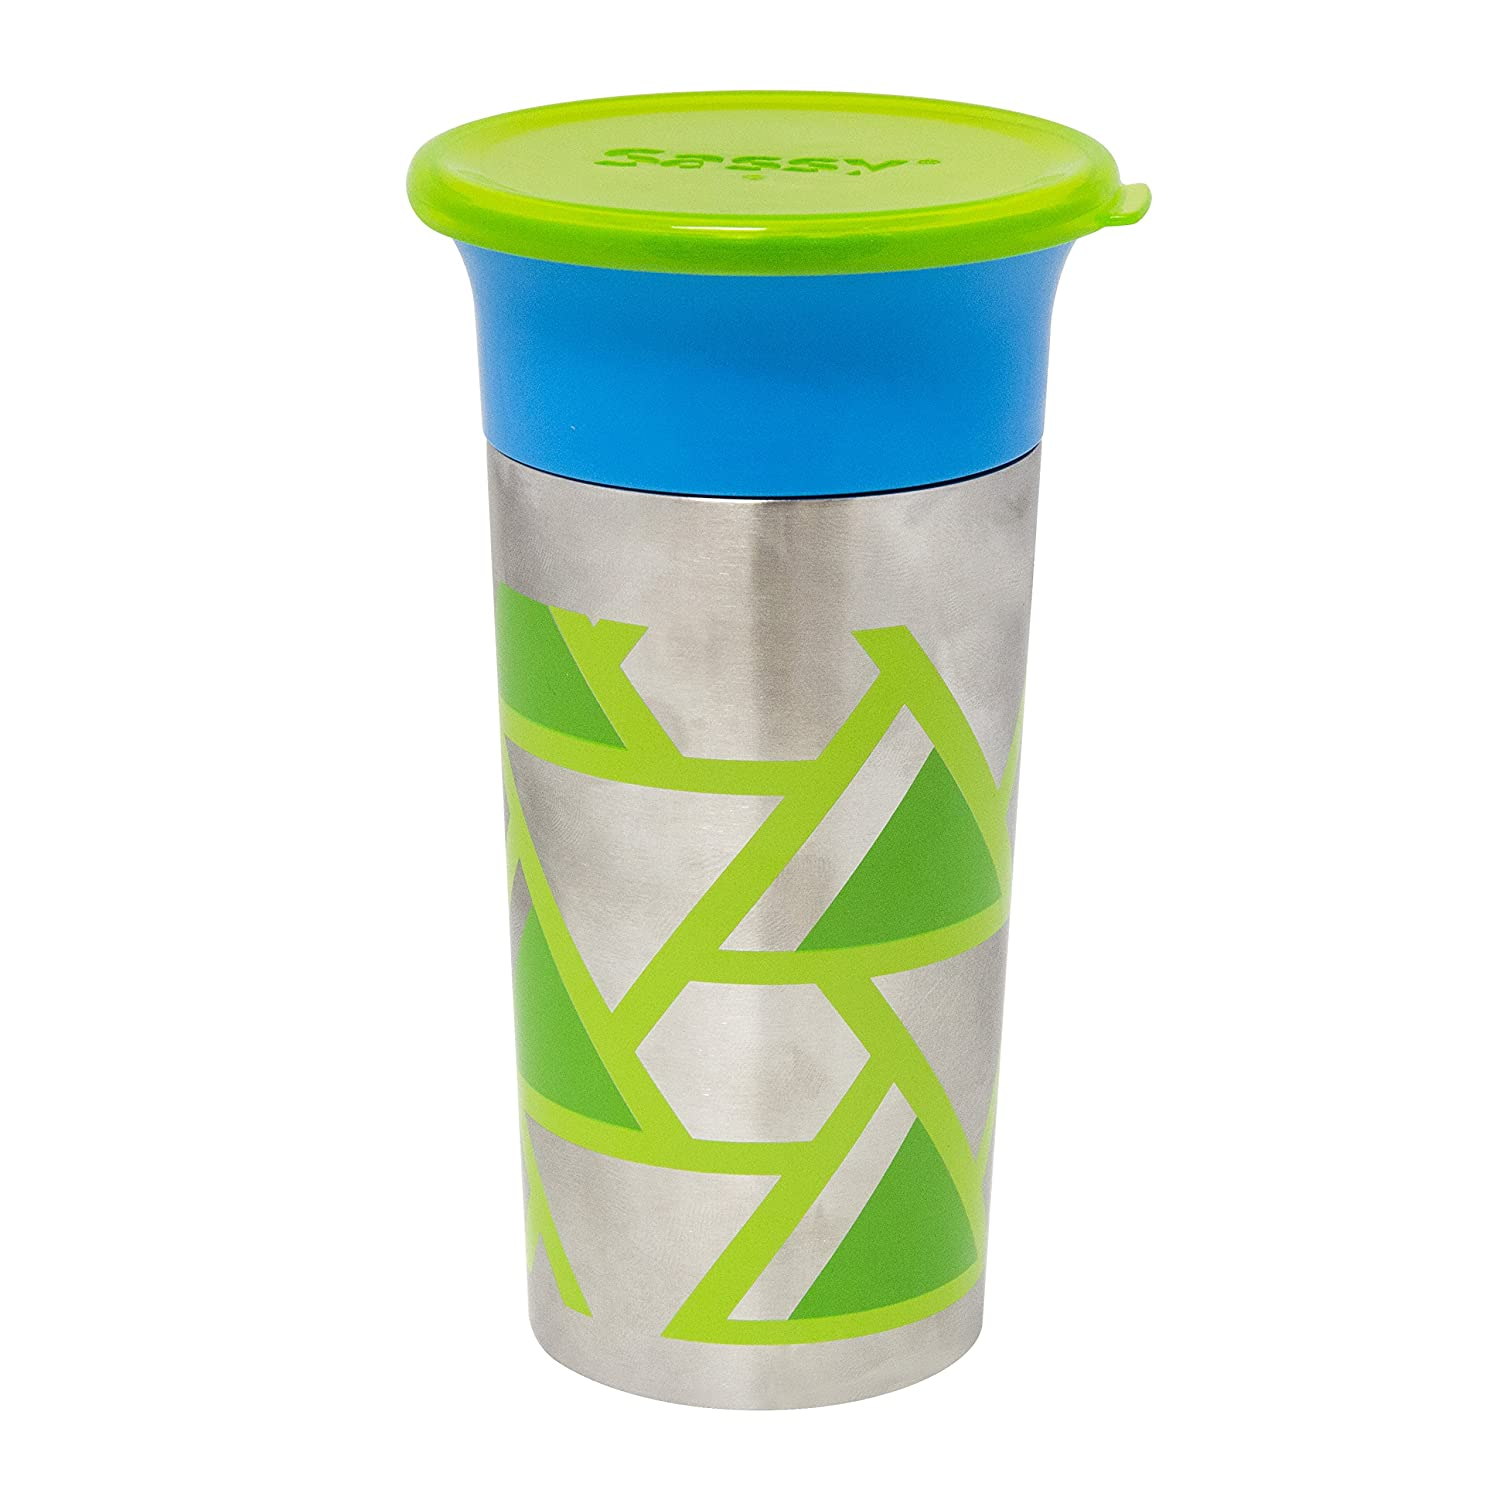 Sassy Stainless Steel 360 Grow-Up Spout Less Sippy Cup with Travel Lid, 9 oz, Blue/Green